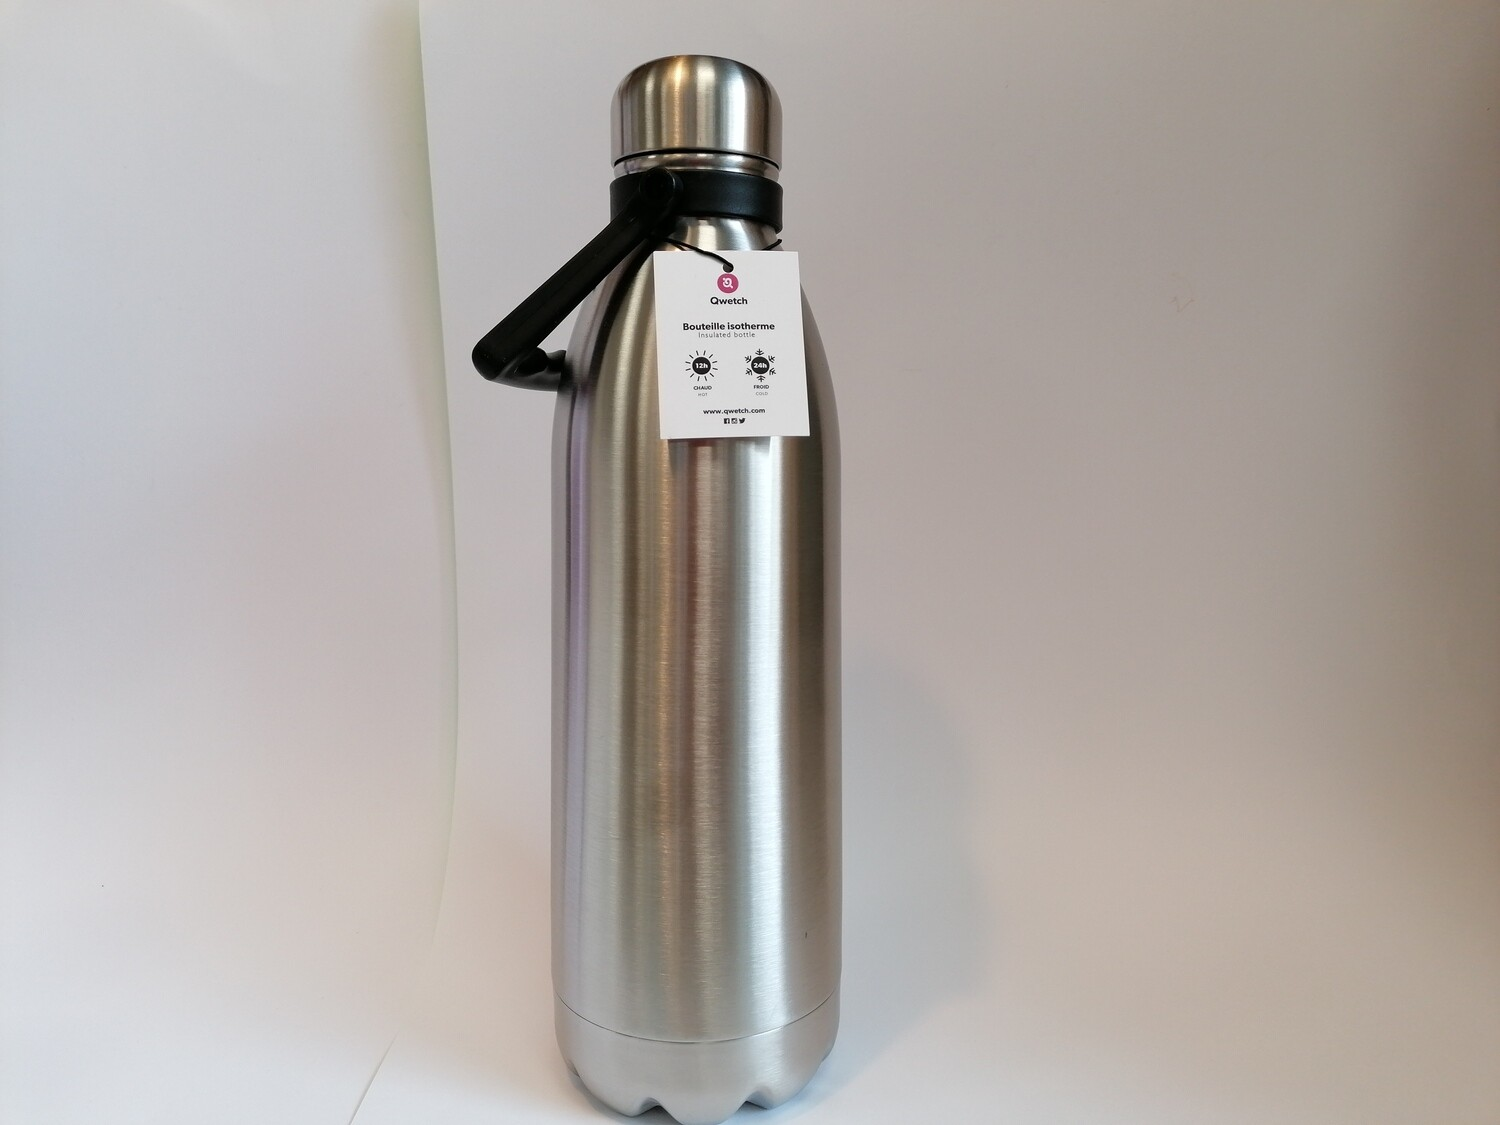 Qwetch 1.5L Insulated Stainless Steel Bottle